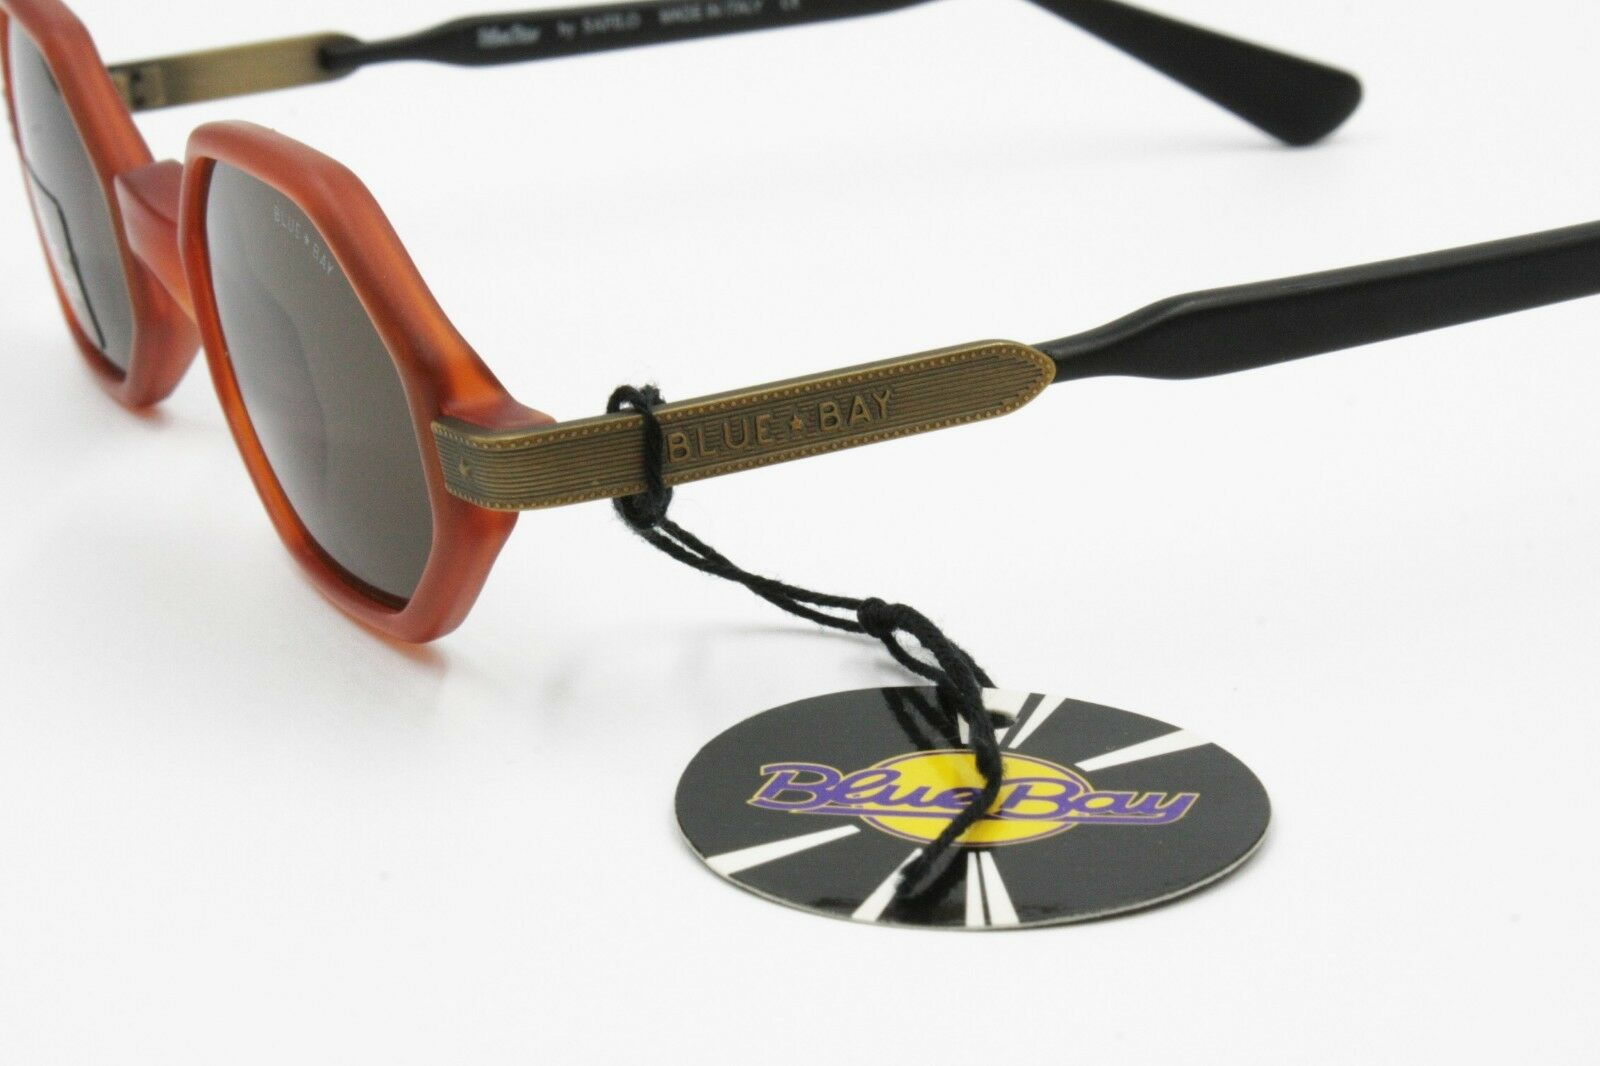 Blue Bay by by by Safilo Sunglasses octagonal little, brass aged arms inserts, NOS 90s 2a076f